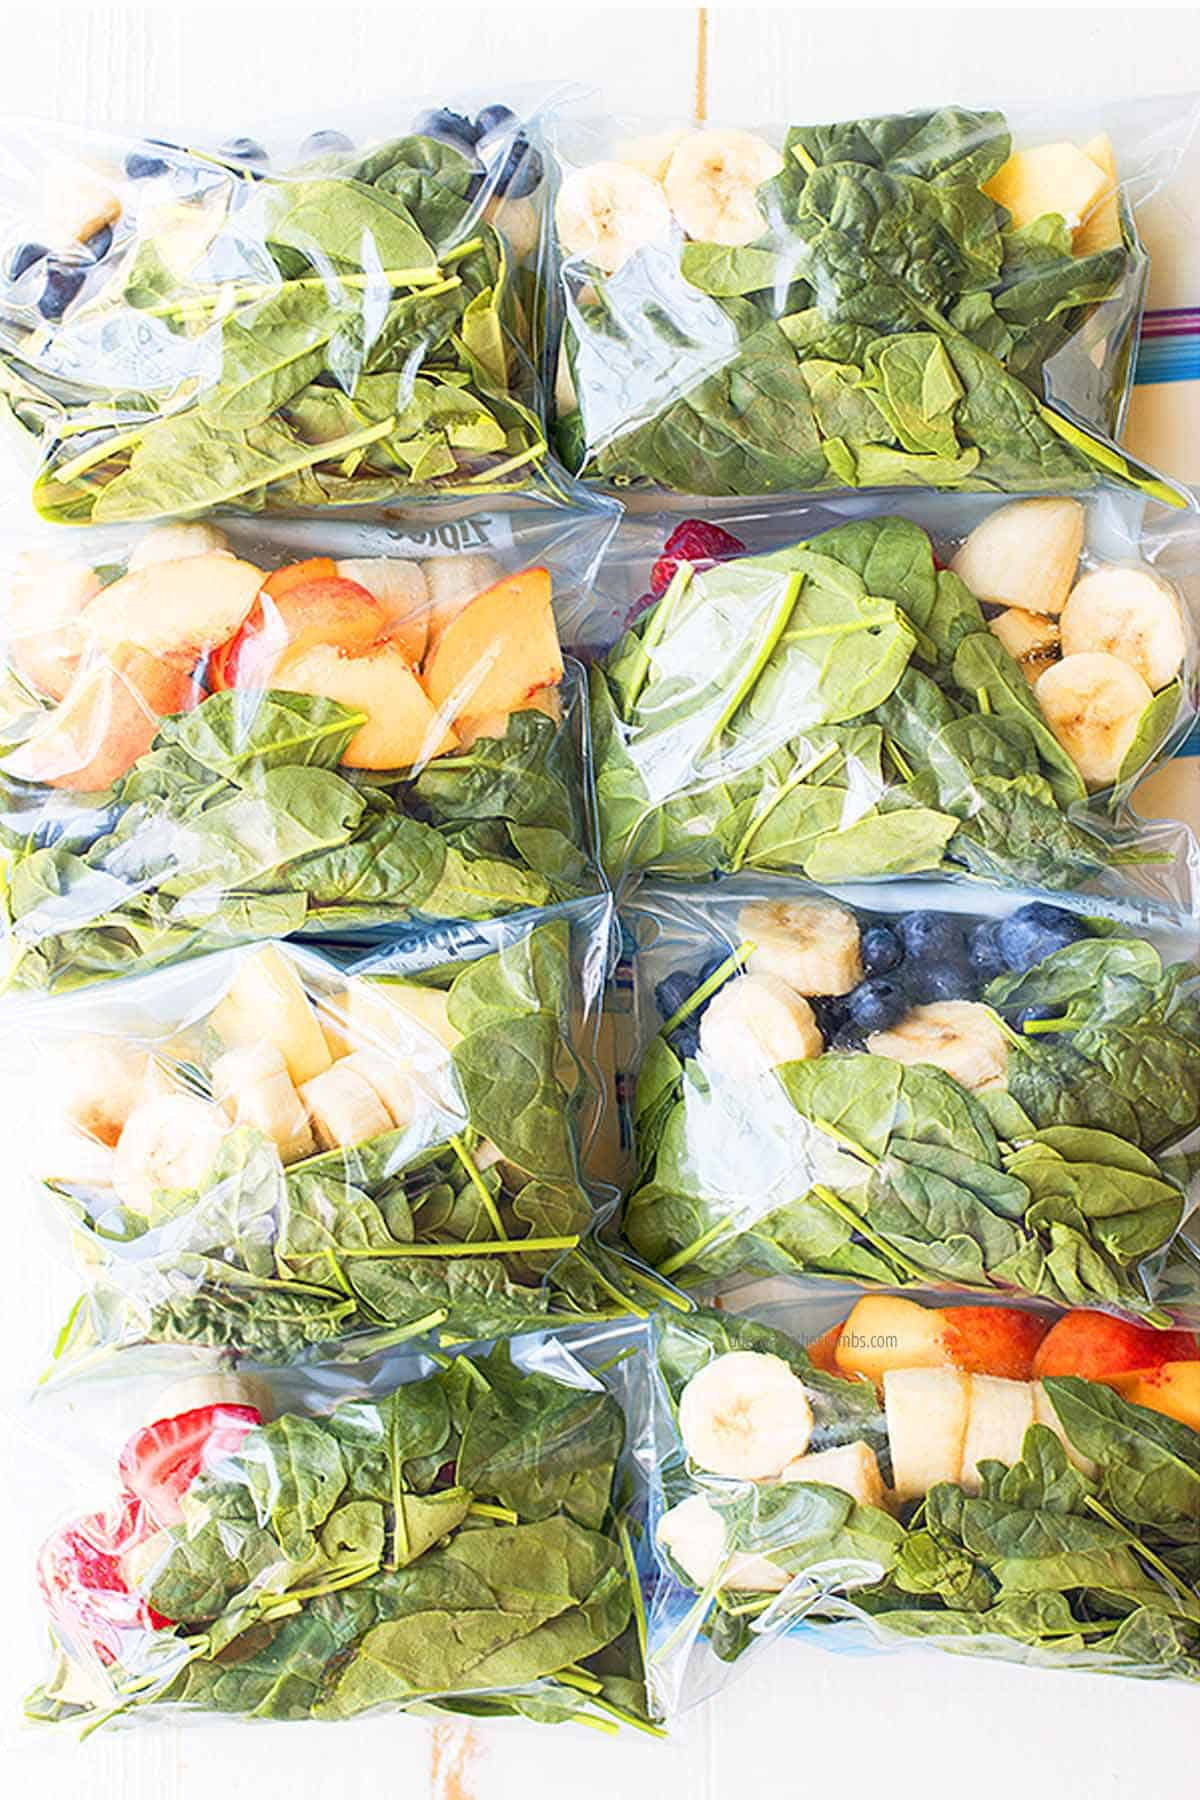 Finished smoothie packs are filled with many different fruits and vegetables (bananas, peaches, mangoes, strawberries, blueberries and greens) and ready to be frozen. The quart size freezer bags are lined up on the countertop, two in a row, with four rows of packs.